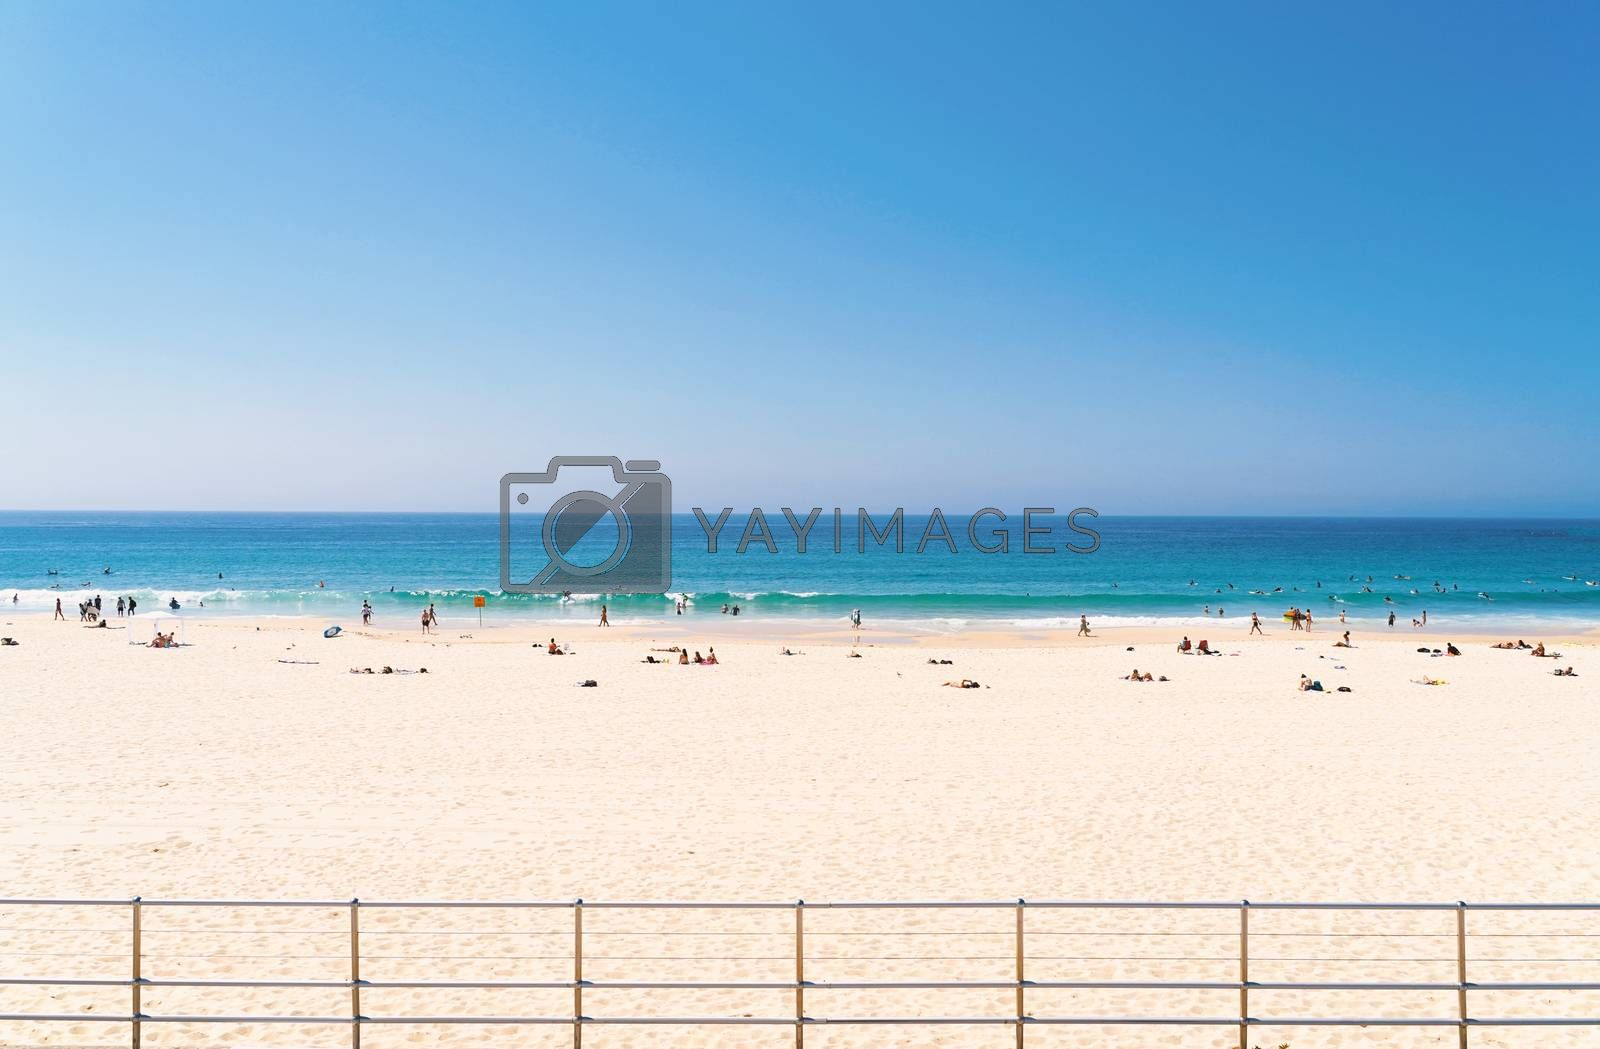 Royalty free image of Front view of sea beach with tourist sunbathing, swimming, surfi by nuchylee